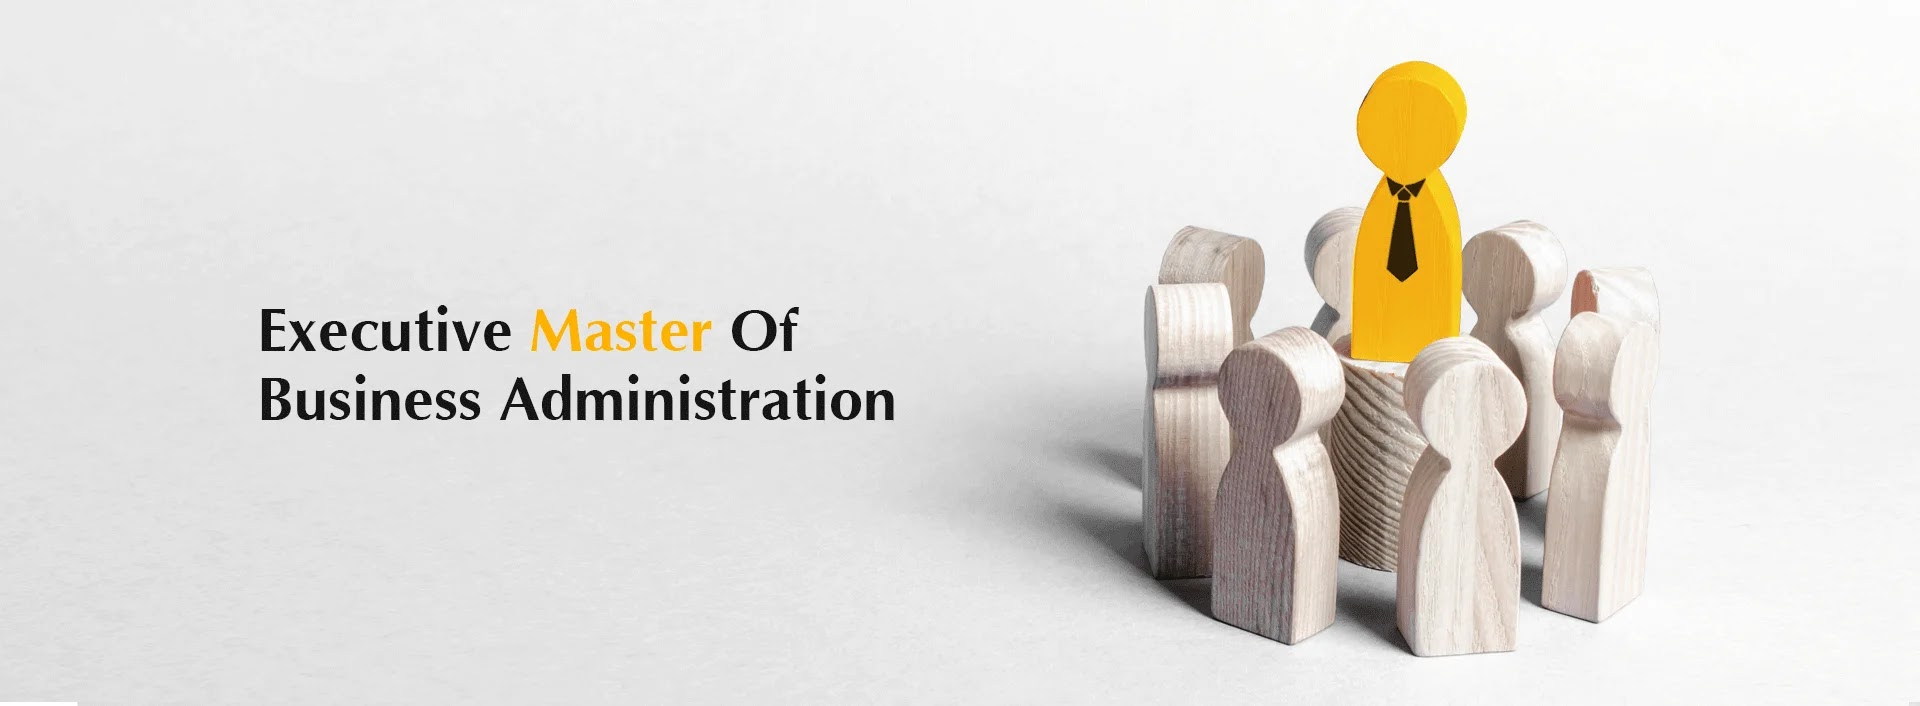 Online or Part-time Distance Learning Executive Master of Business Administration